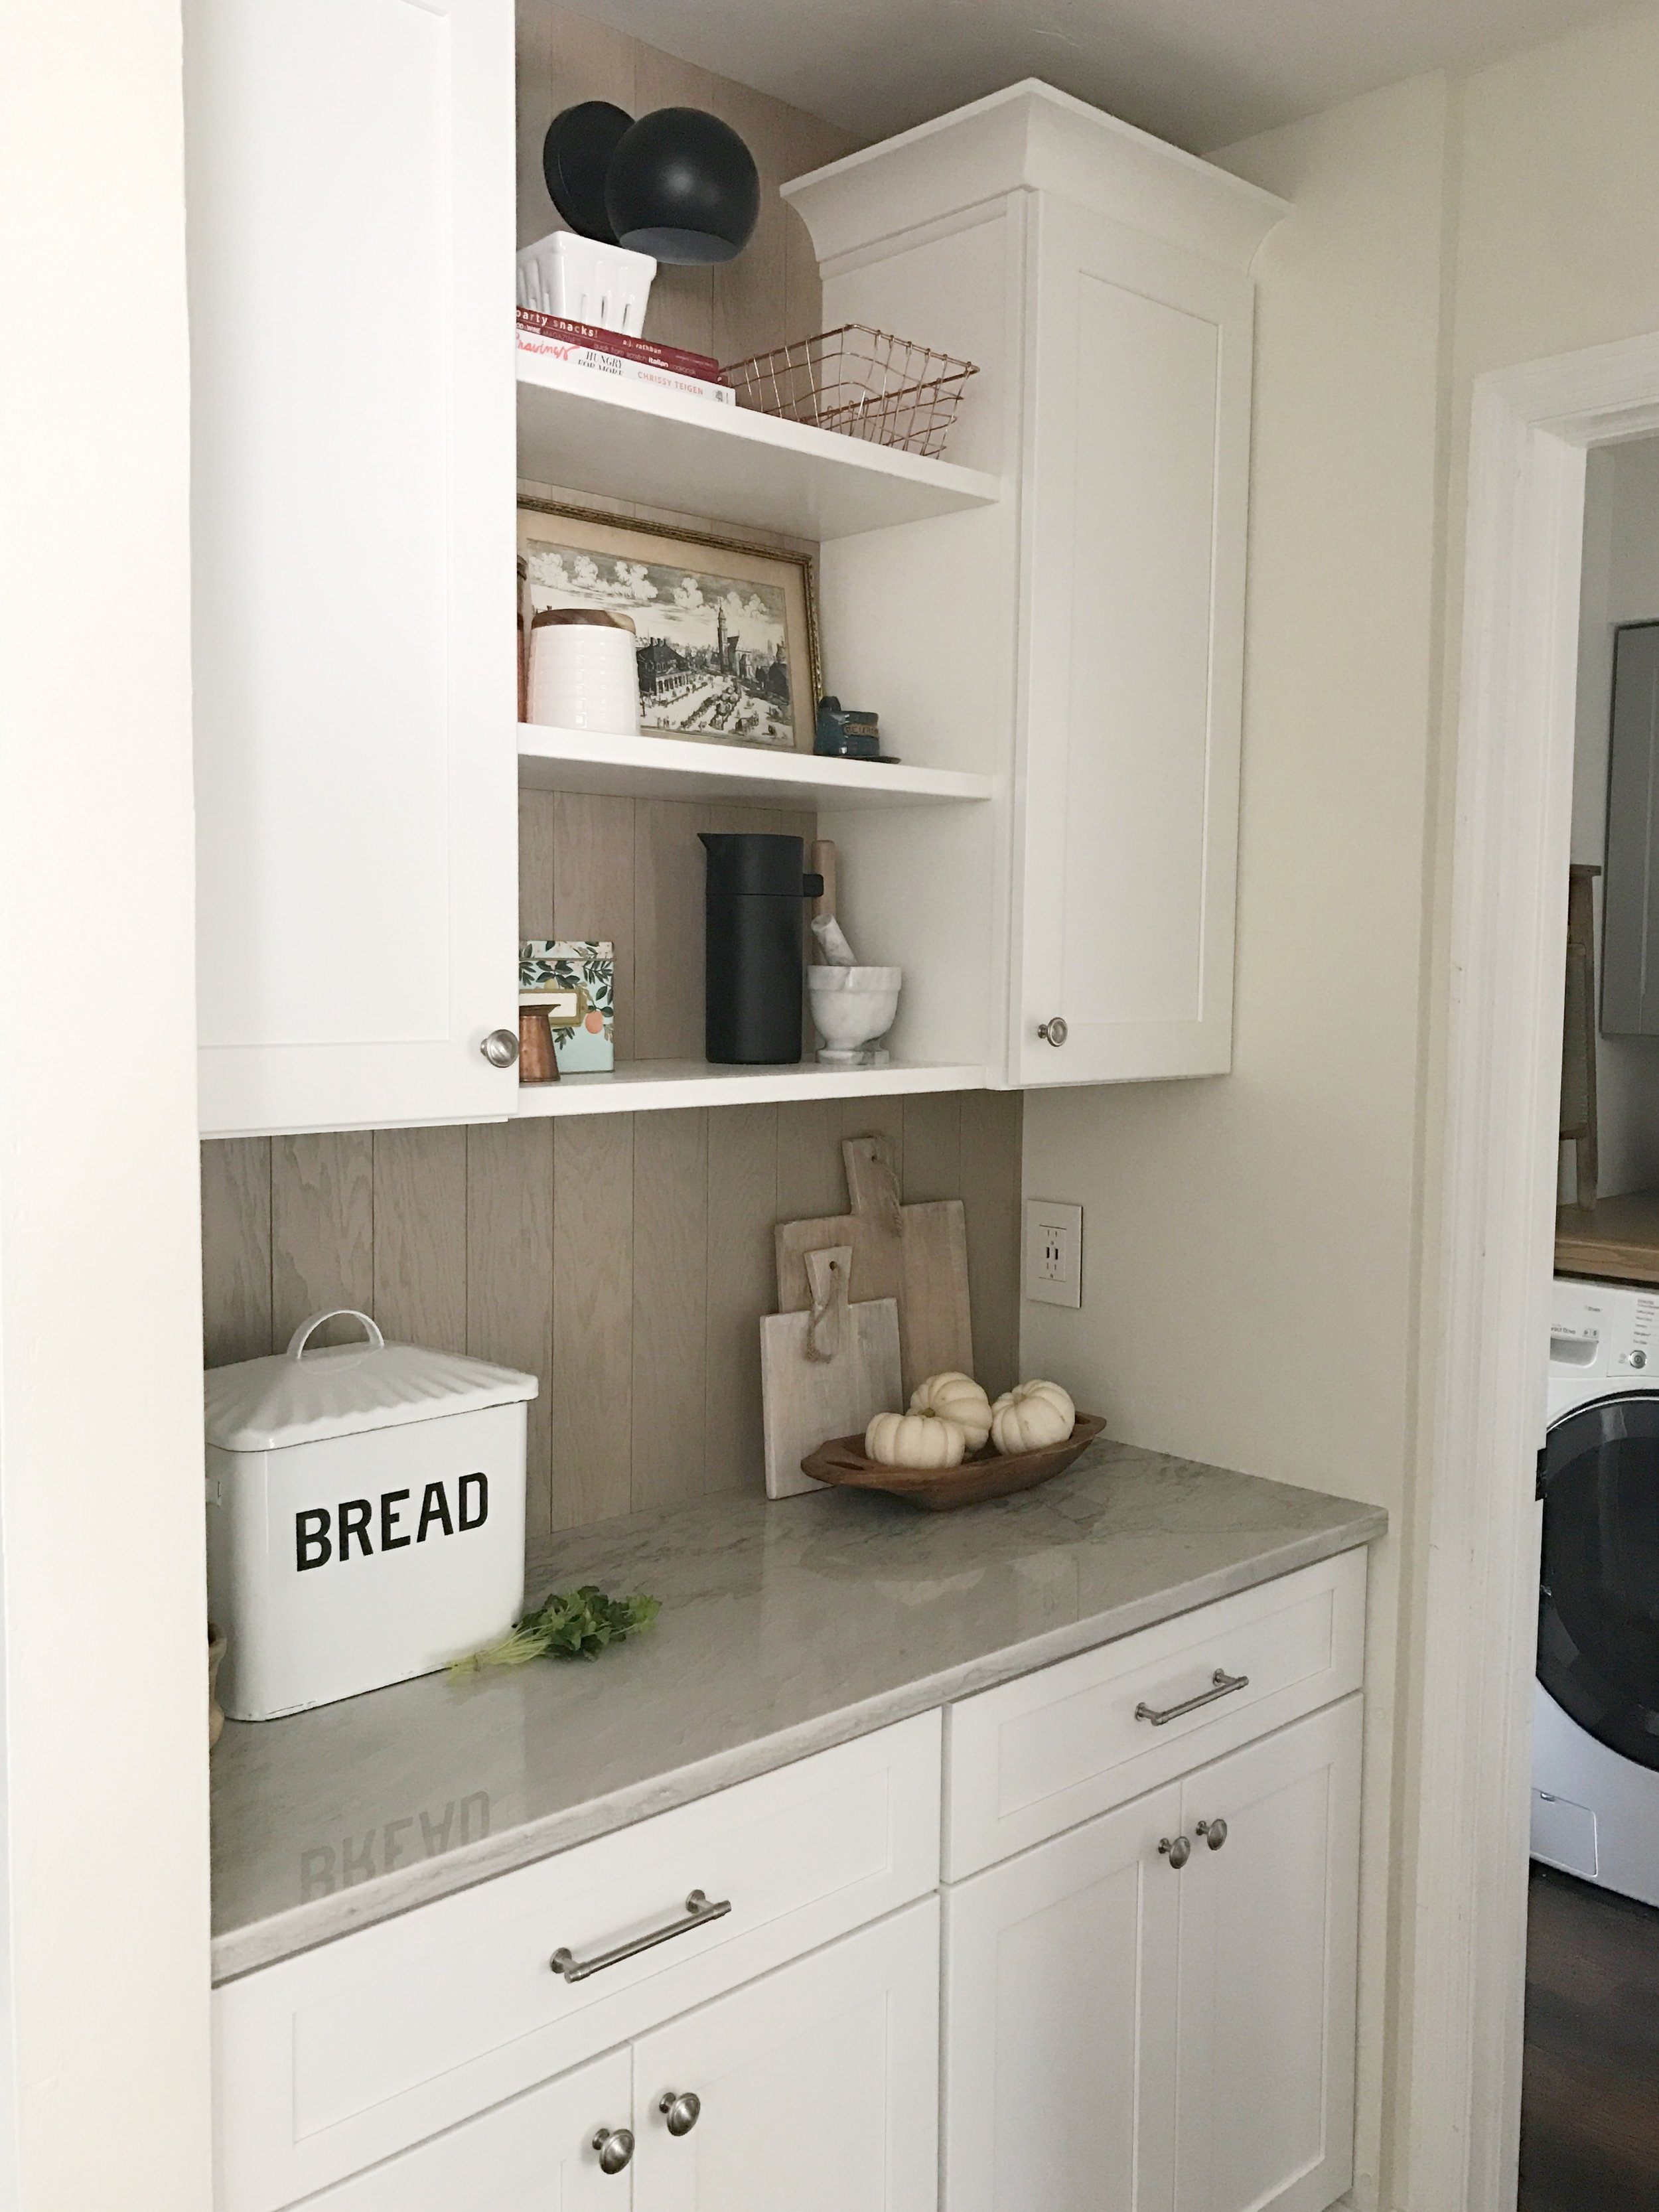 AFTER- pretty countertops and floating shelves replace a basic wire shelf pantry. I can't believe its the same little space.